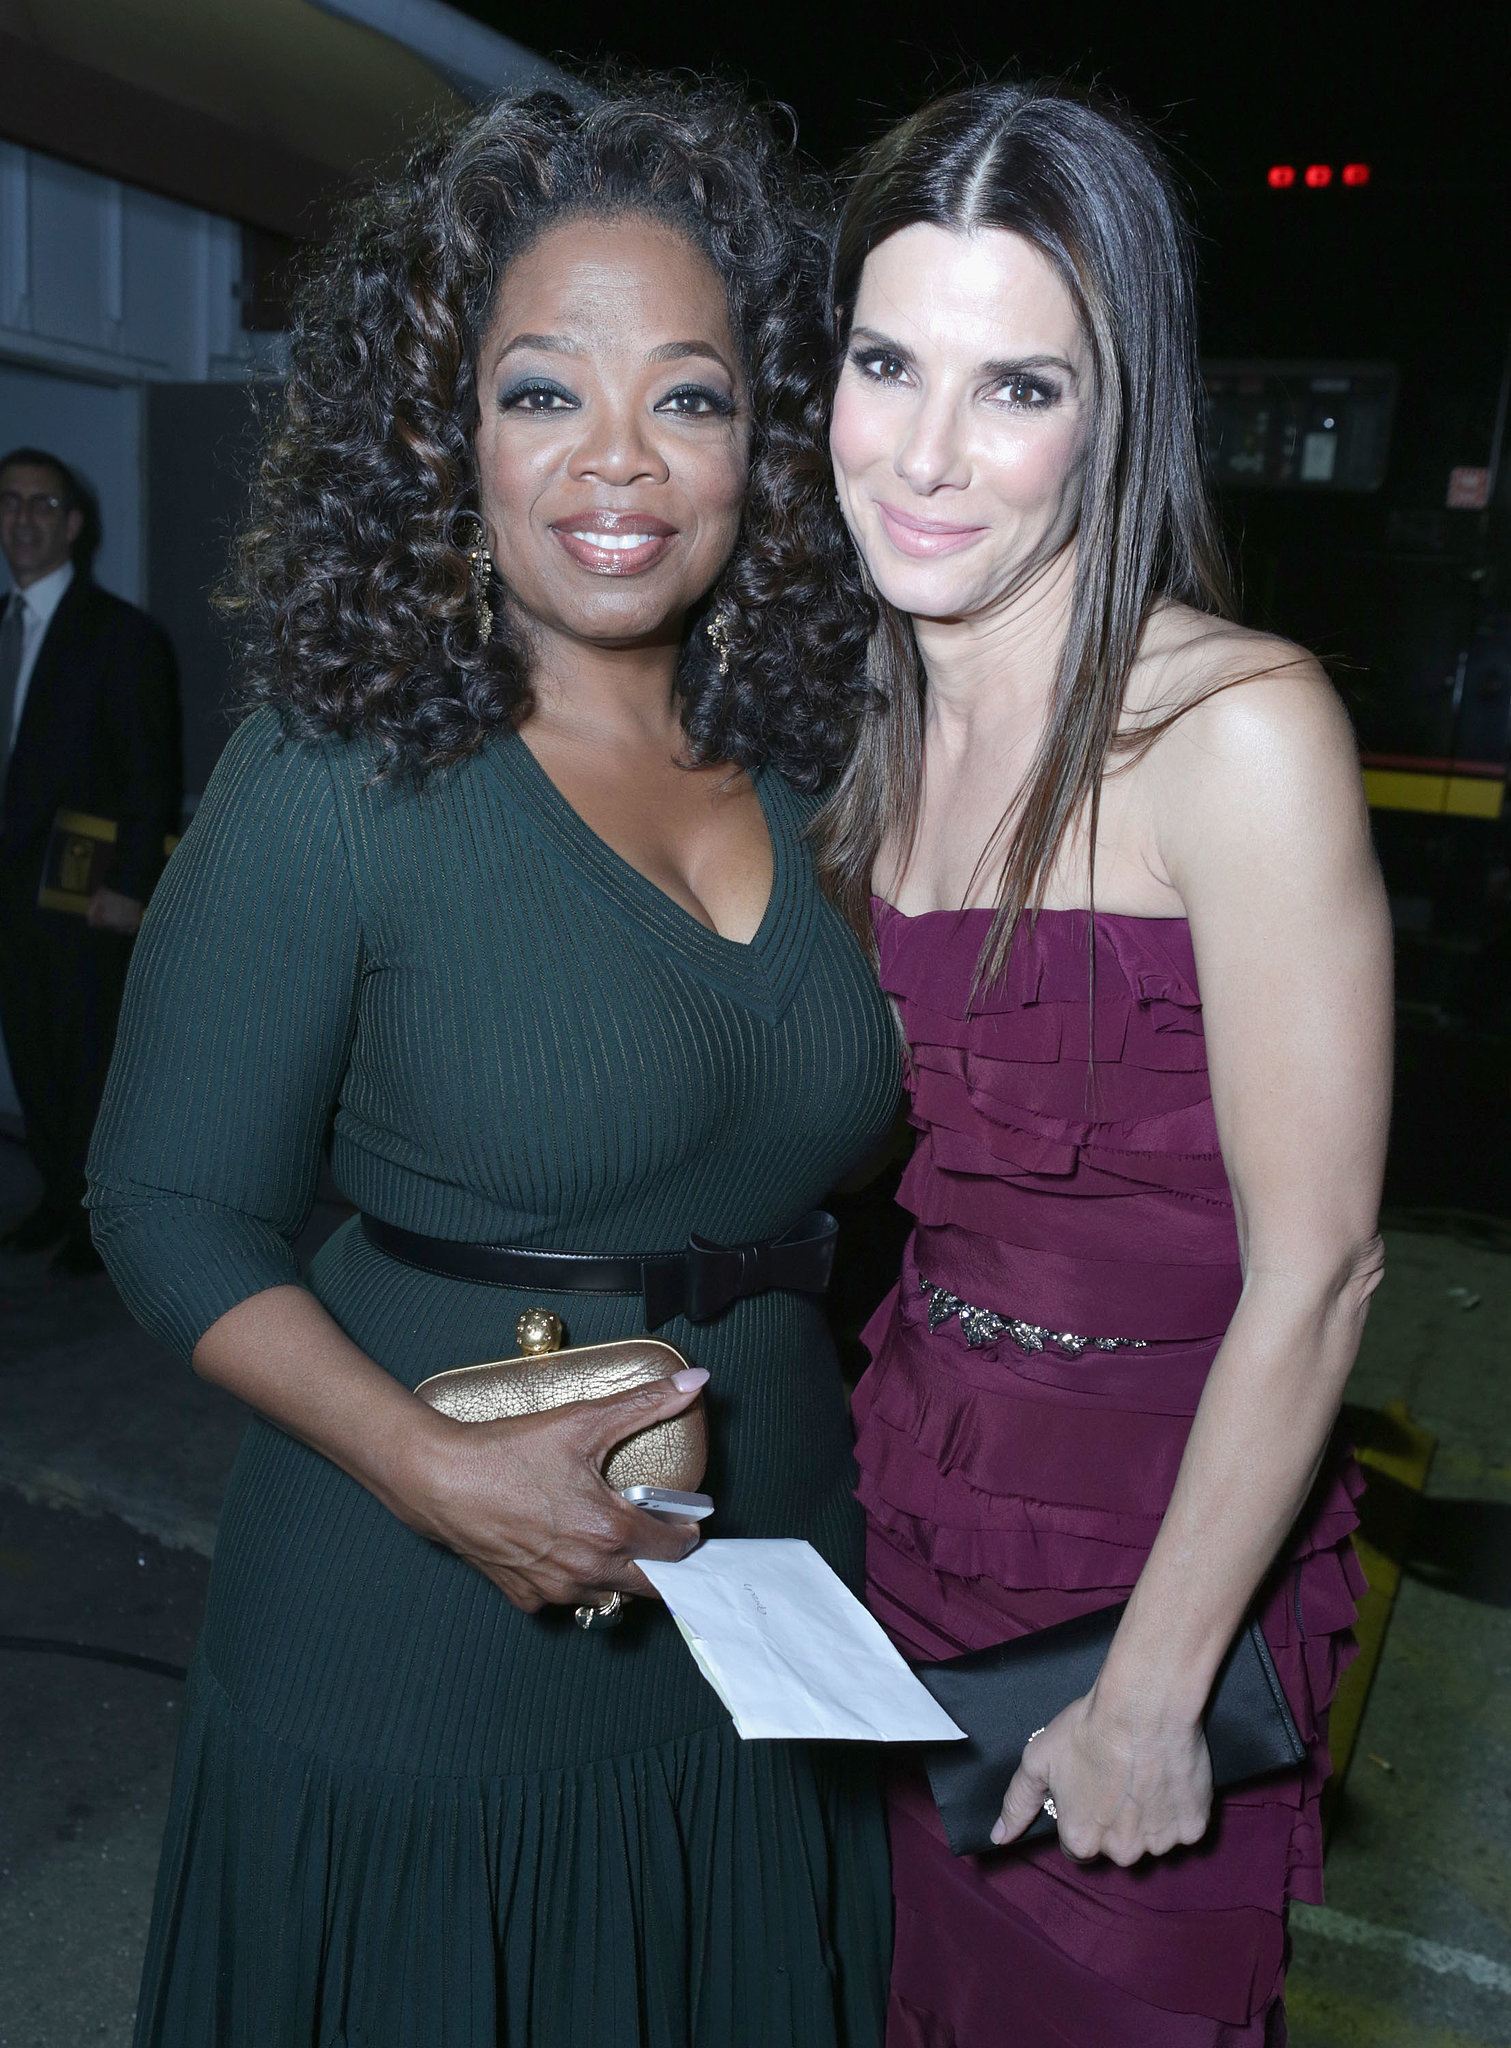 Sandra posed for a photo with Oprah Winfrey at the Critics' Choice Movie Awards in January 2014.